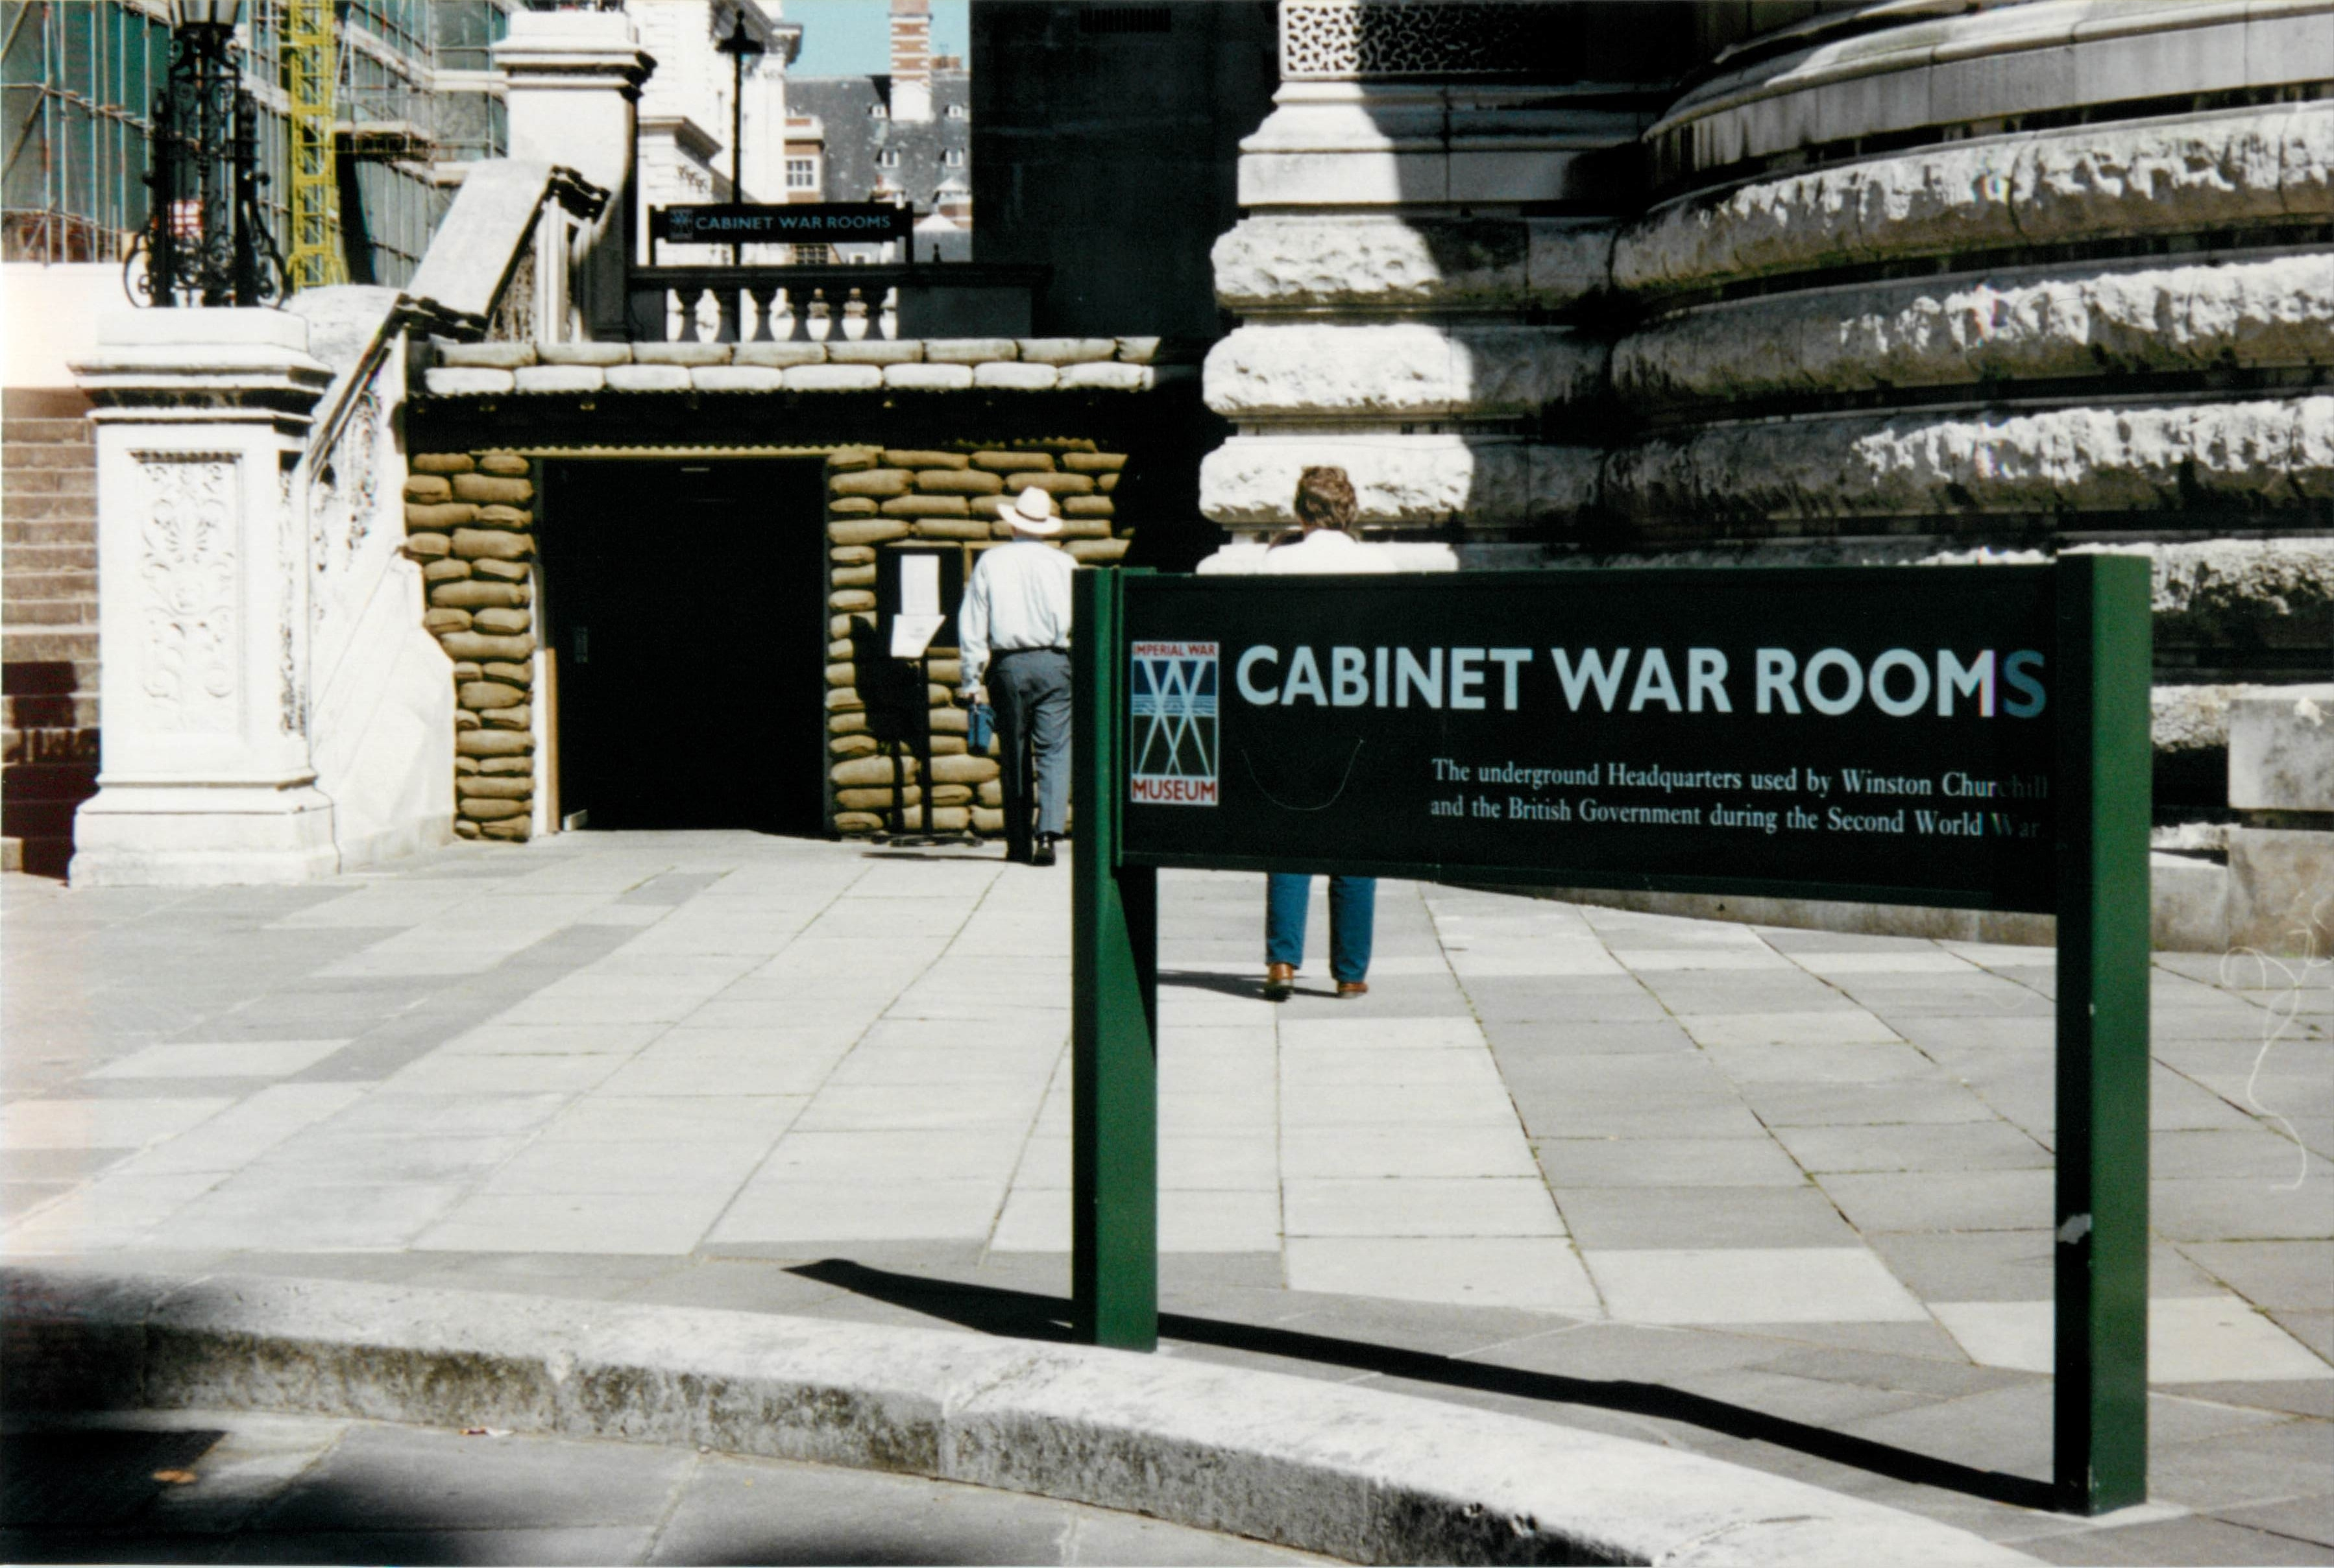 Swell Churchill War Rooms Tickets Deals Reviews Family Download Free Architecture Designs Embacsunscenecom